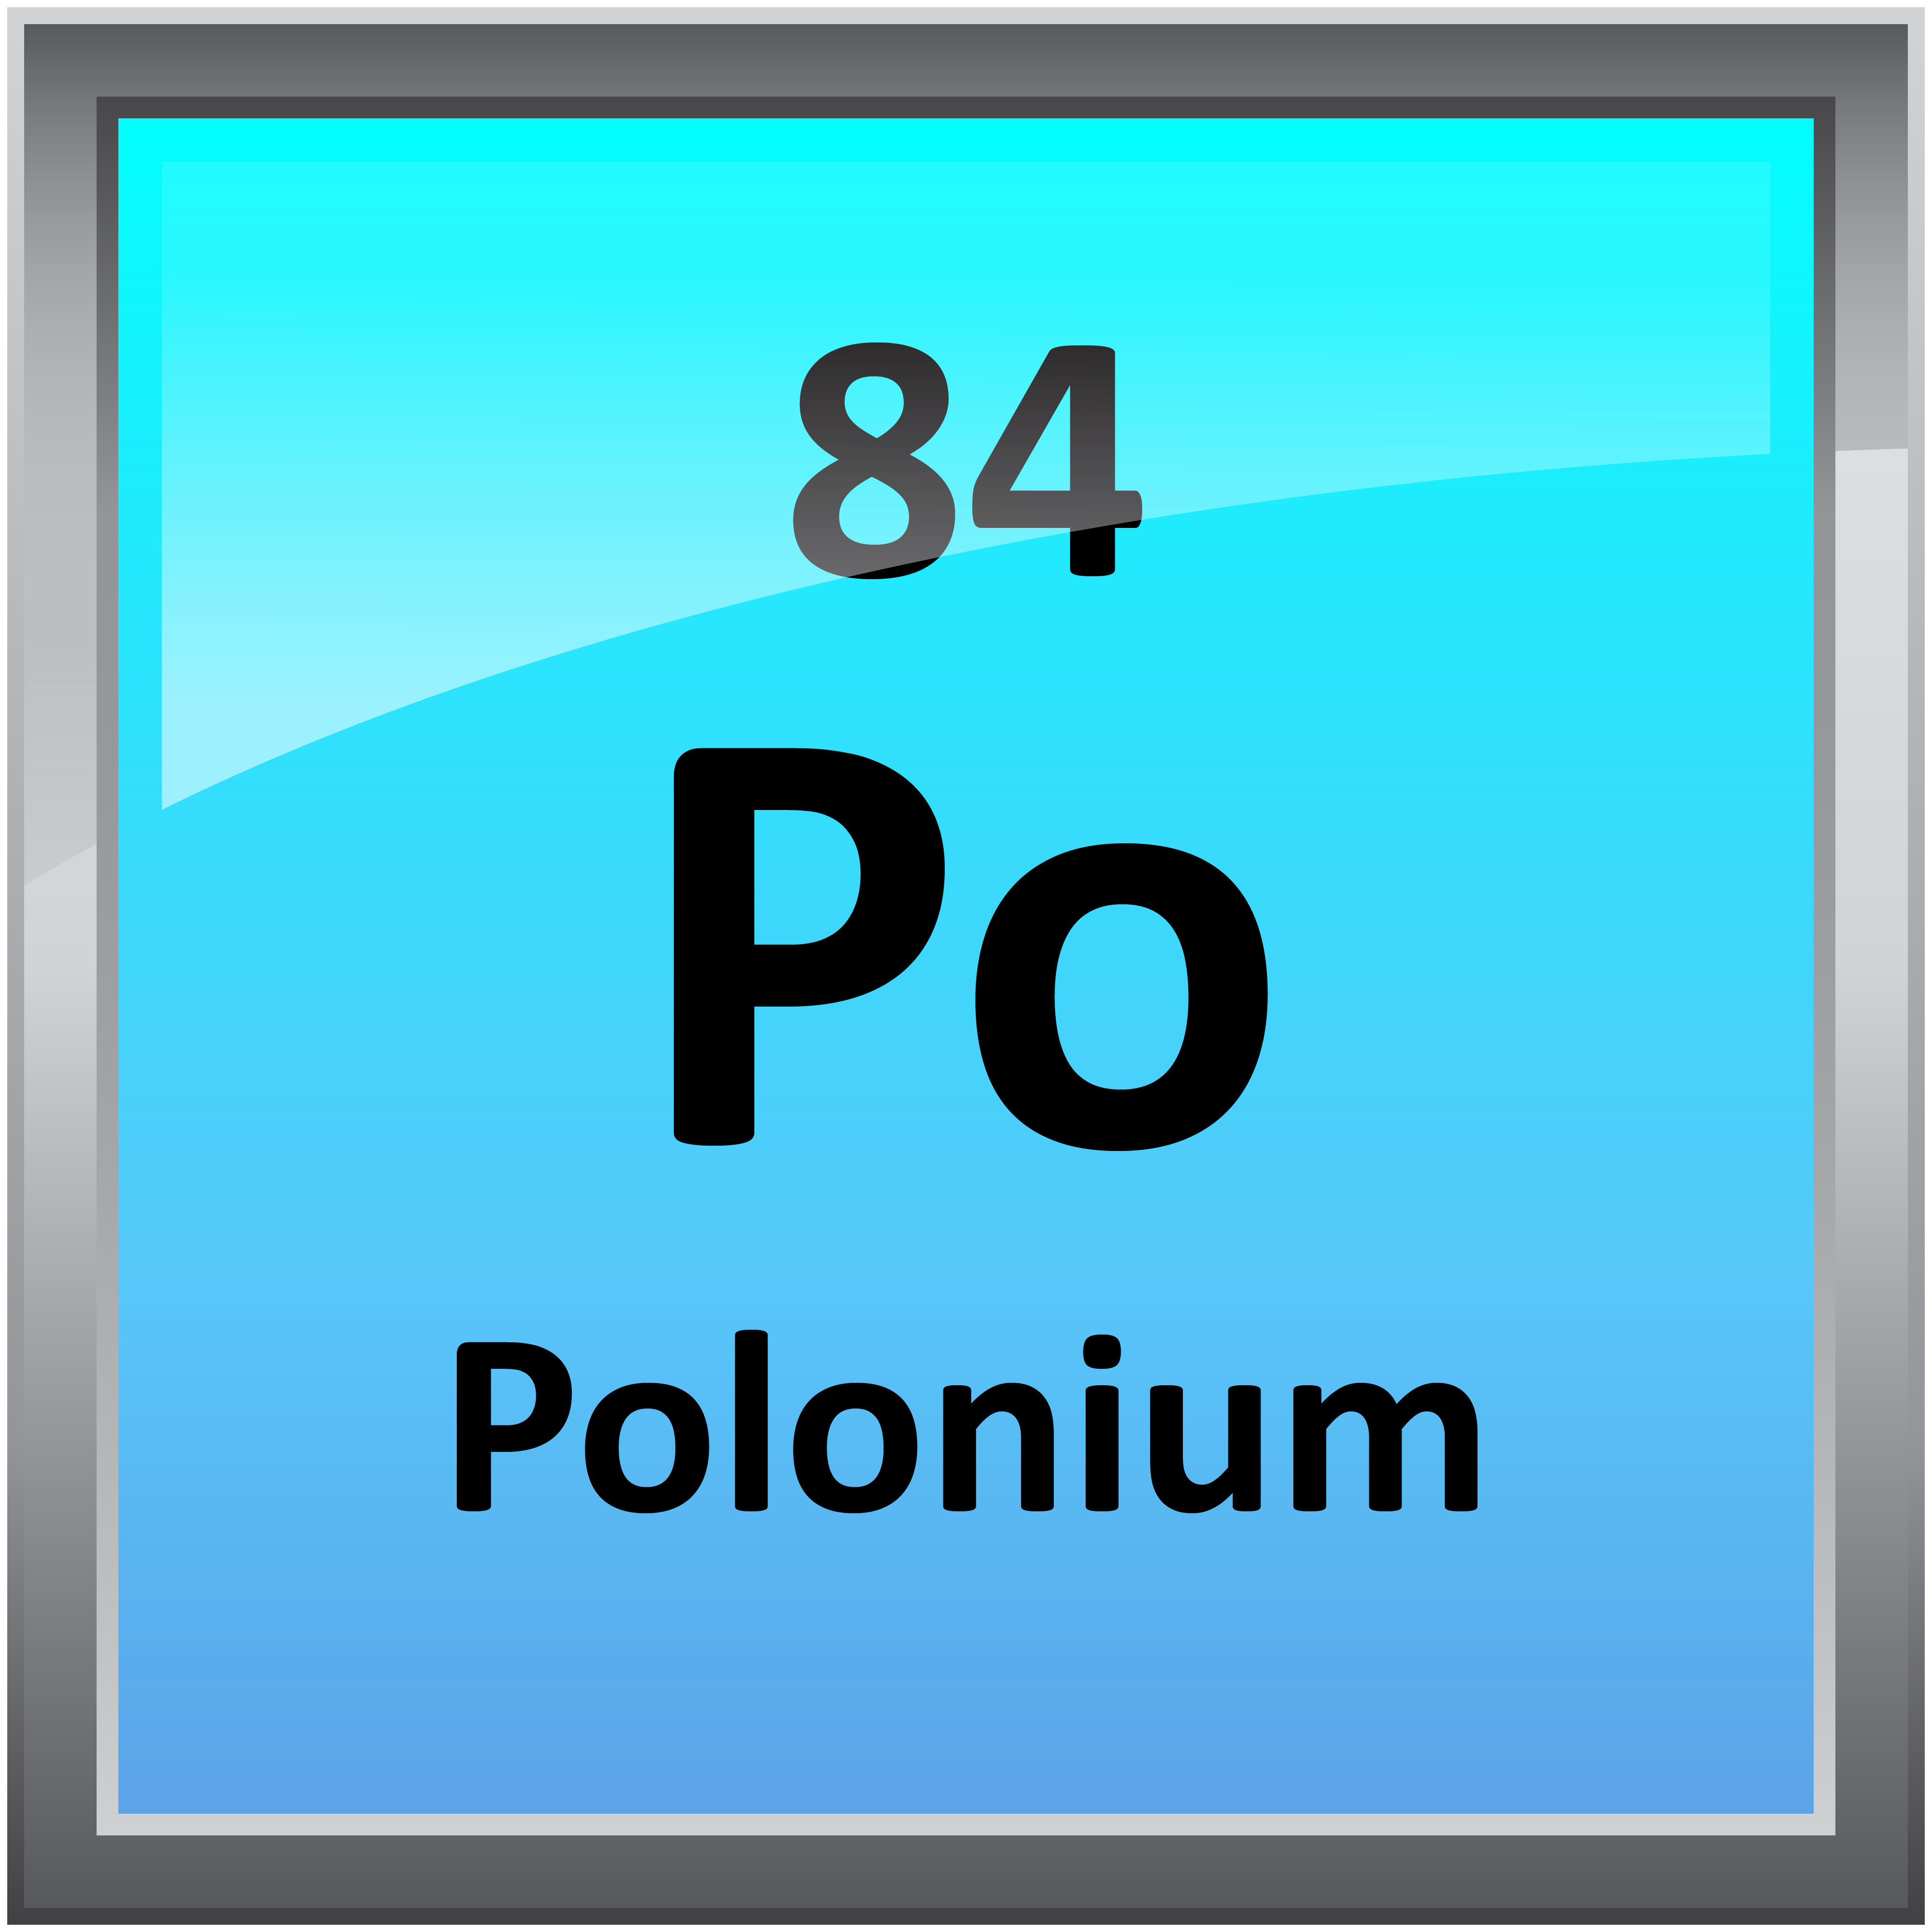 084 polonium science notes and projects 4000 in printable periodic table element symbols gamestrikefo Gallery